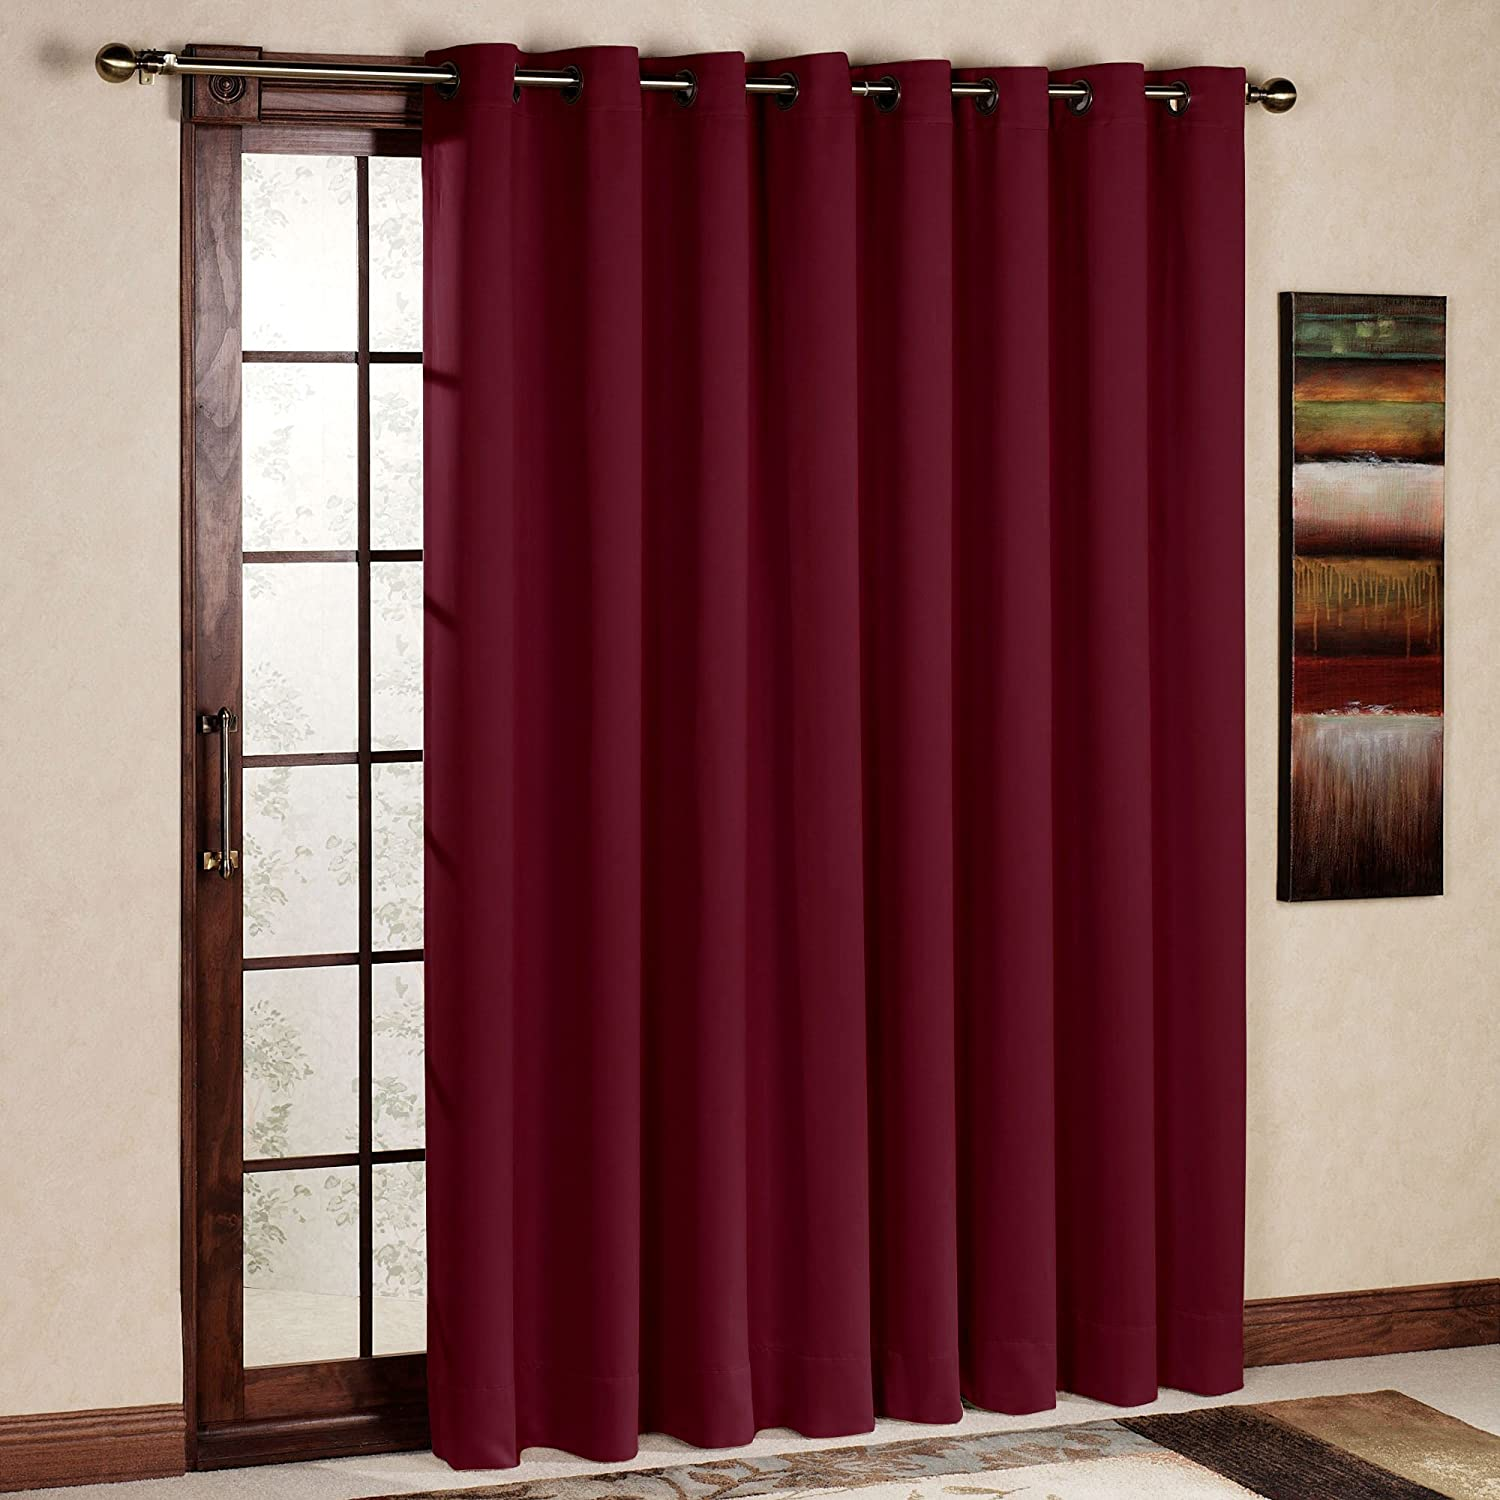 Burgundy Bedding Curtains – Ease Bedding with Style